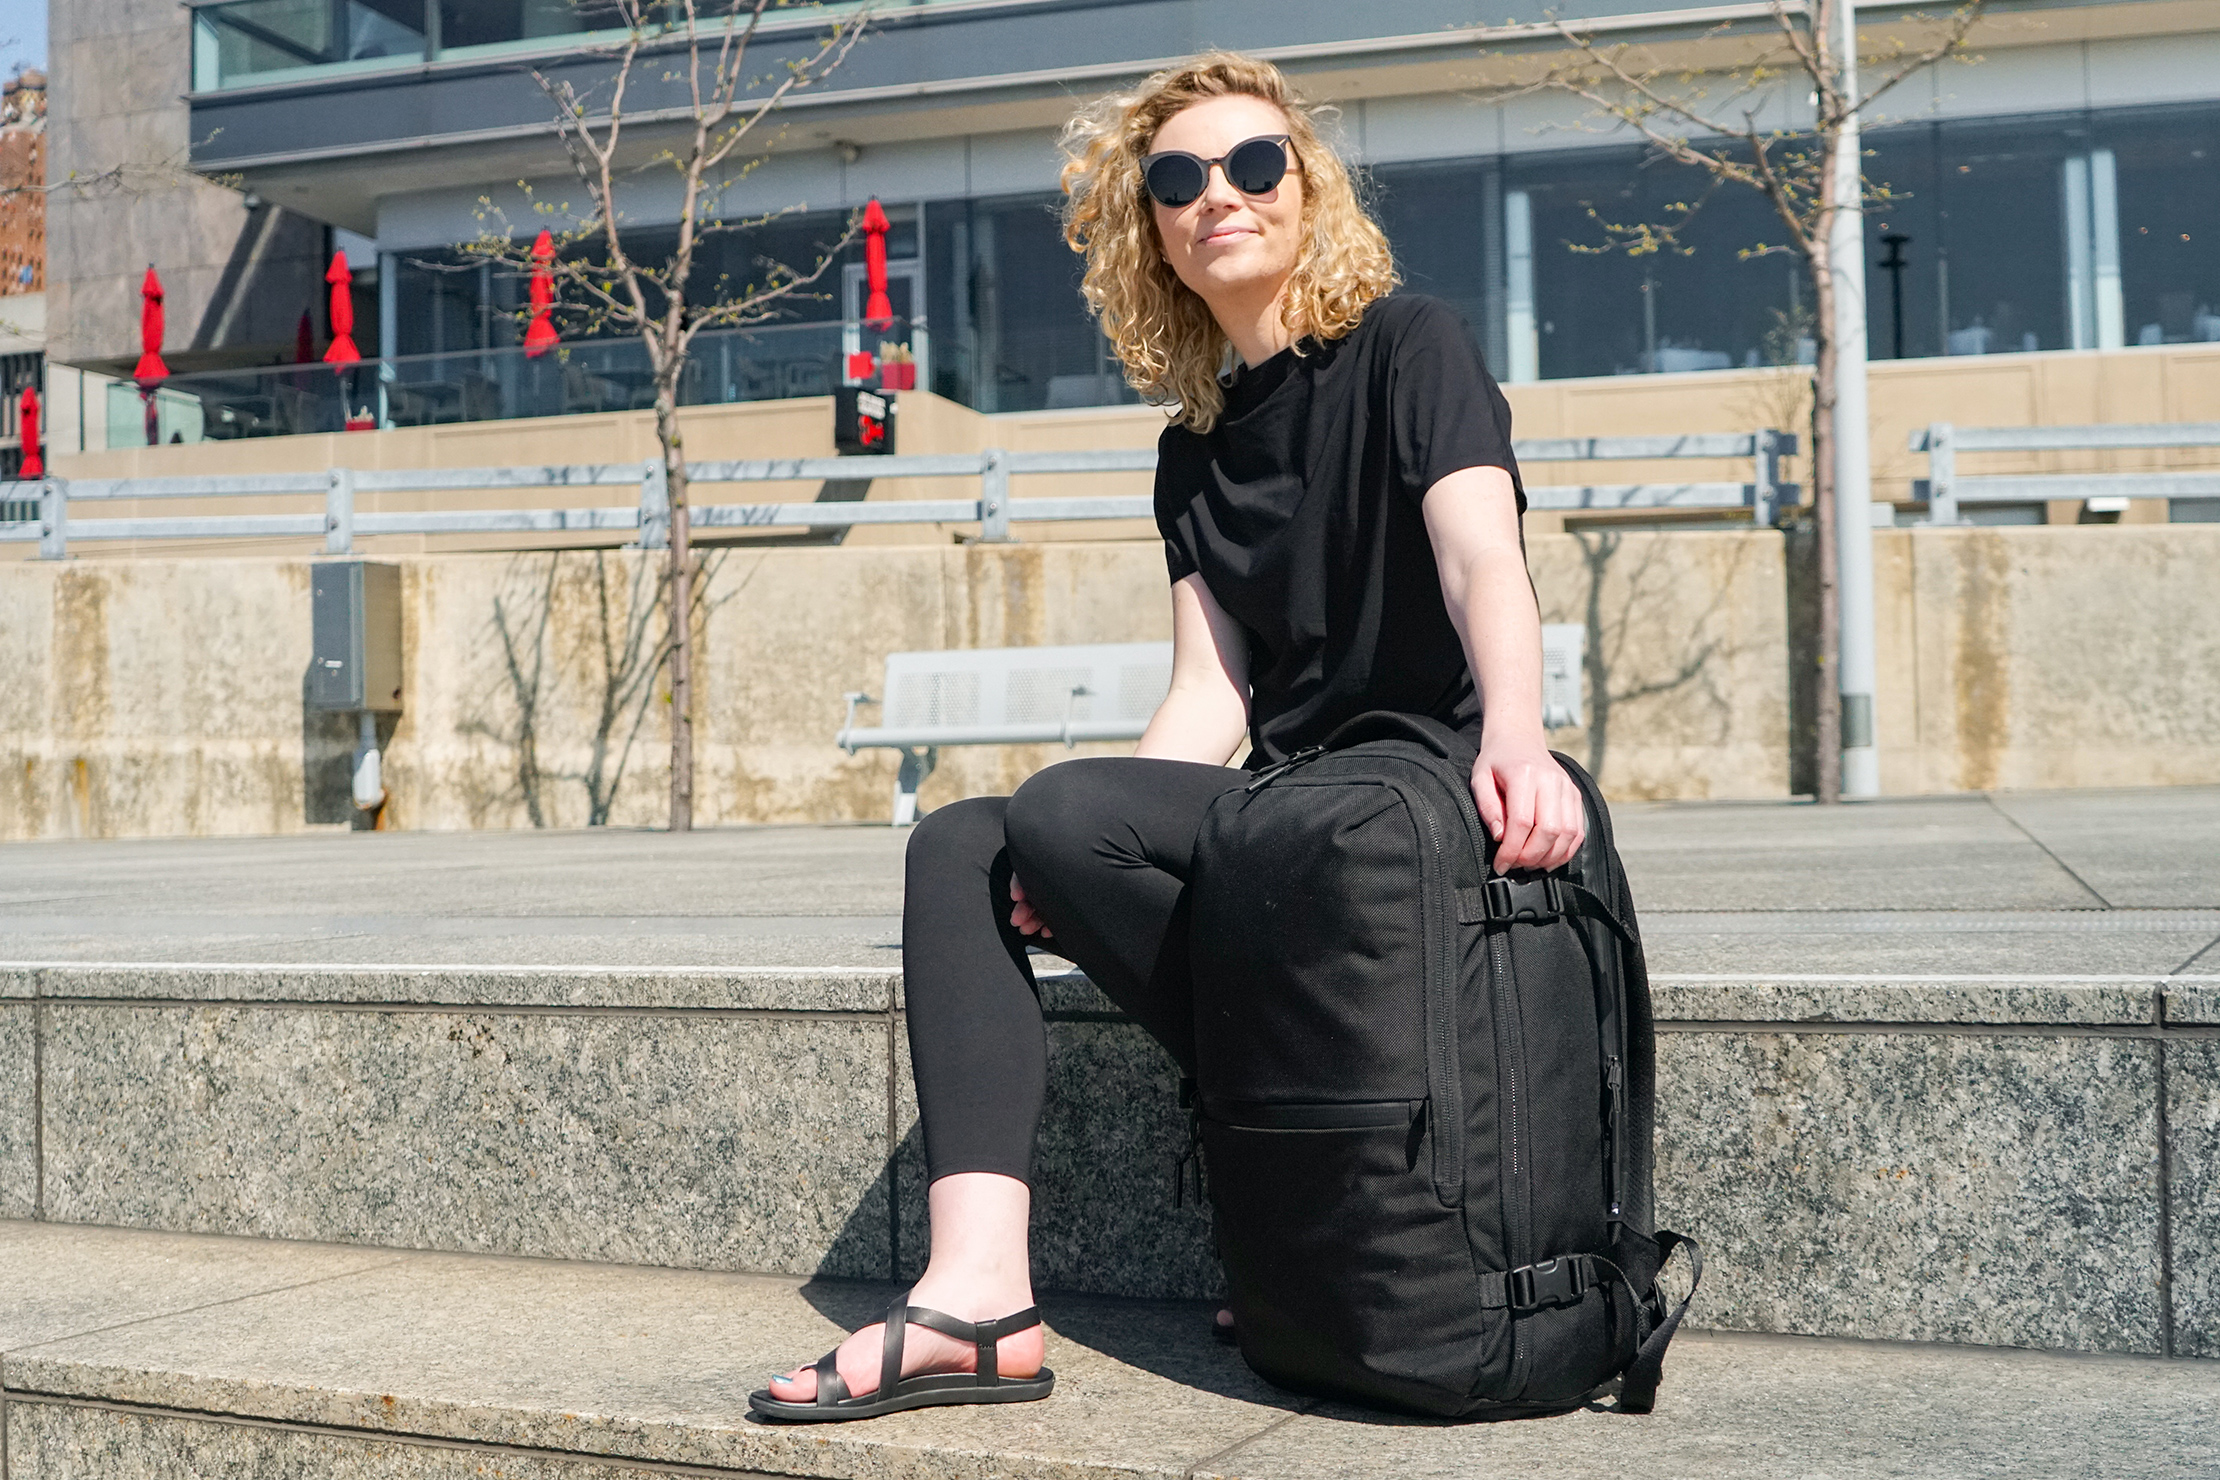 Rebecca With The Aer Travel Pack 2 In Detroit, Michigan